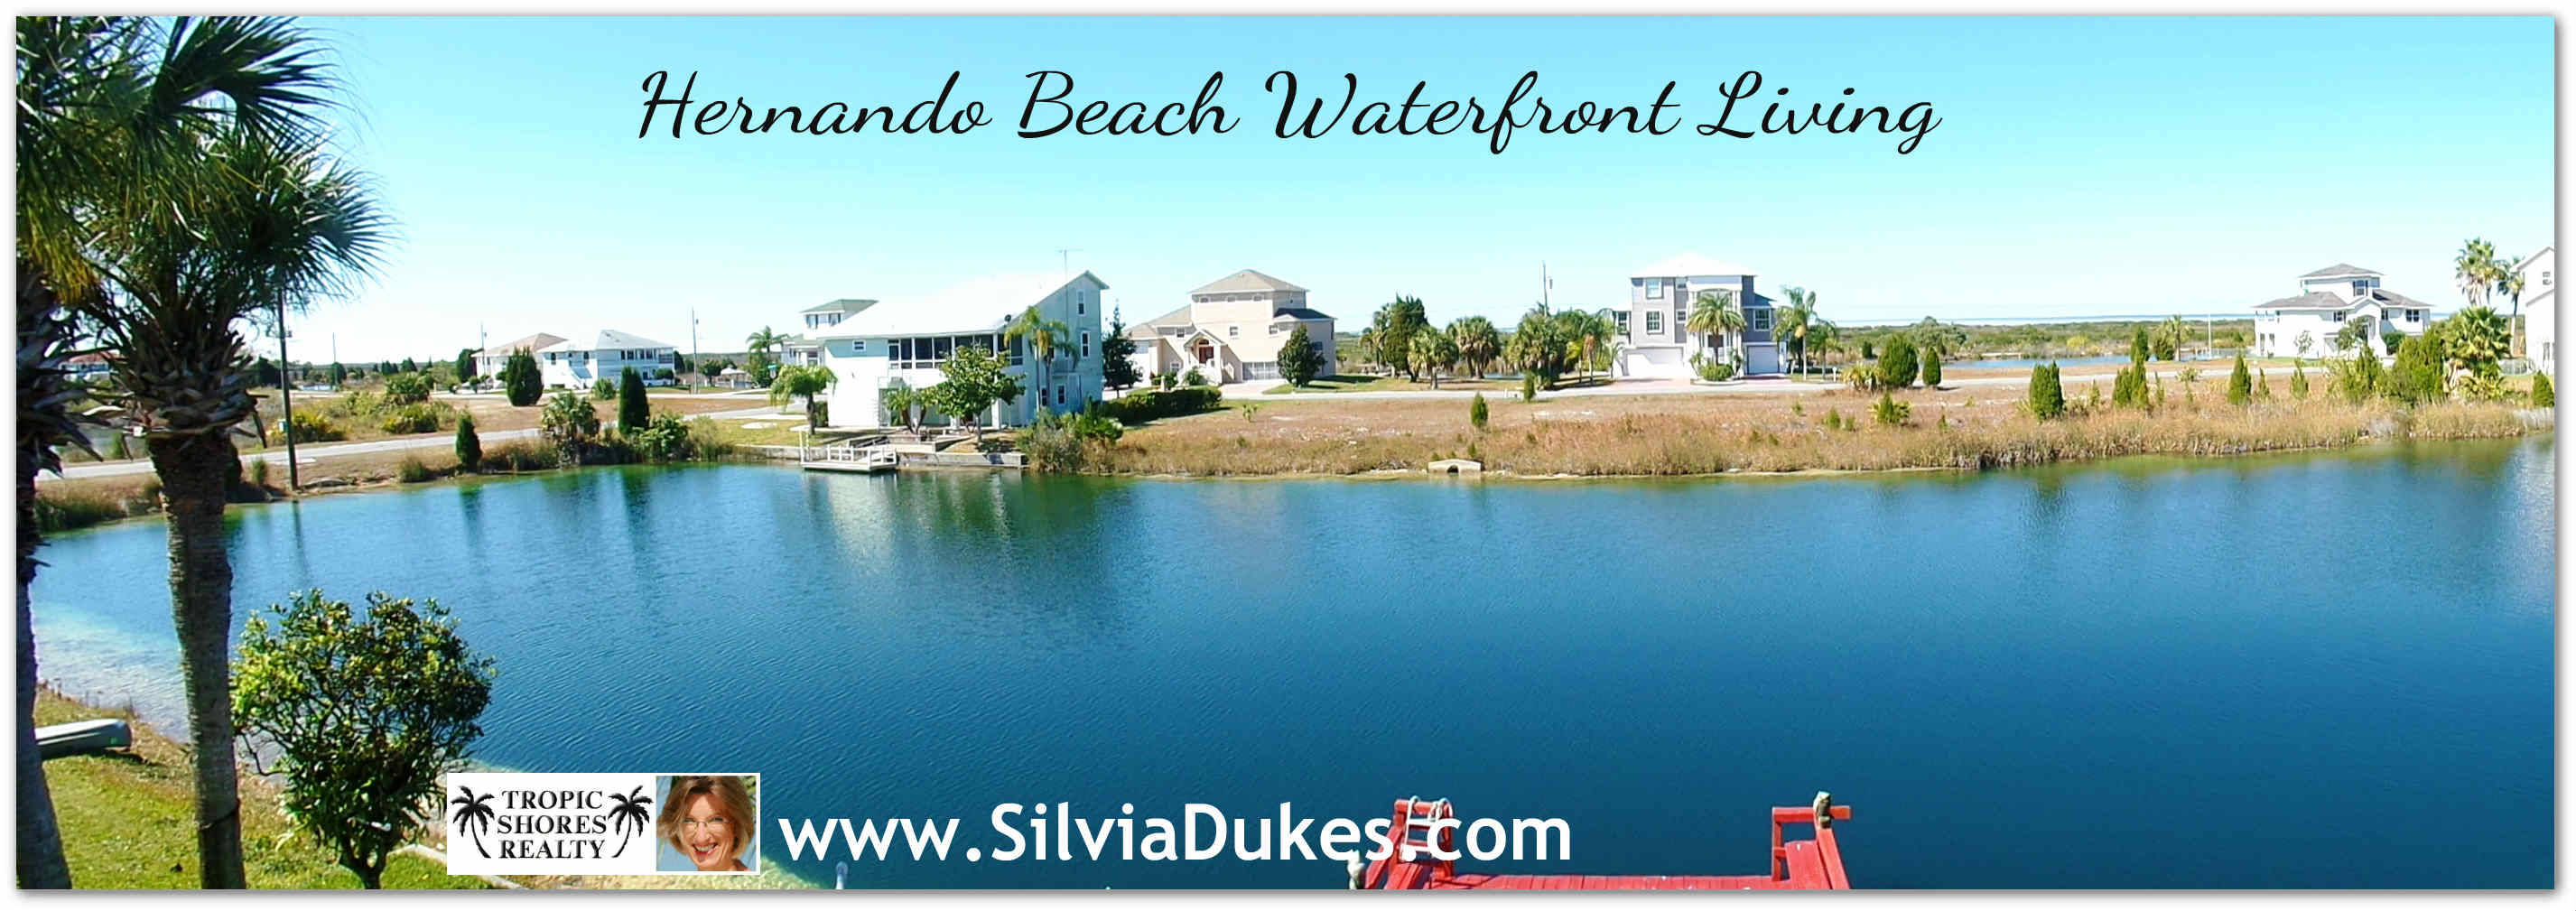 Hernando Beach Florida waterfront living Canal View Panorama